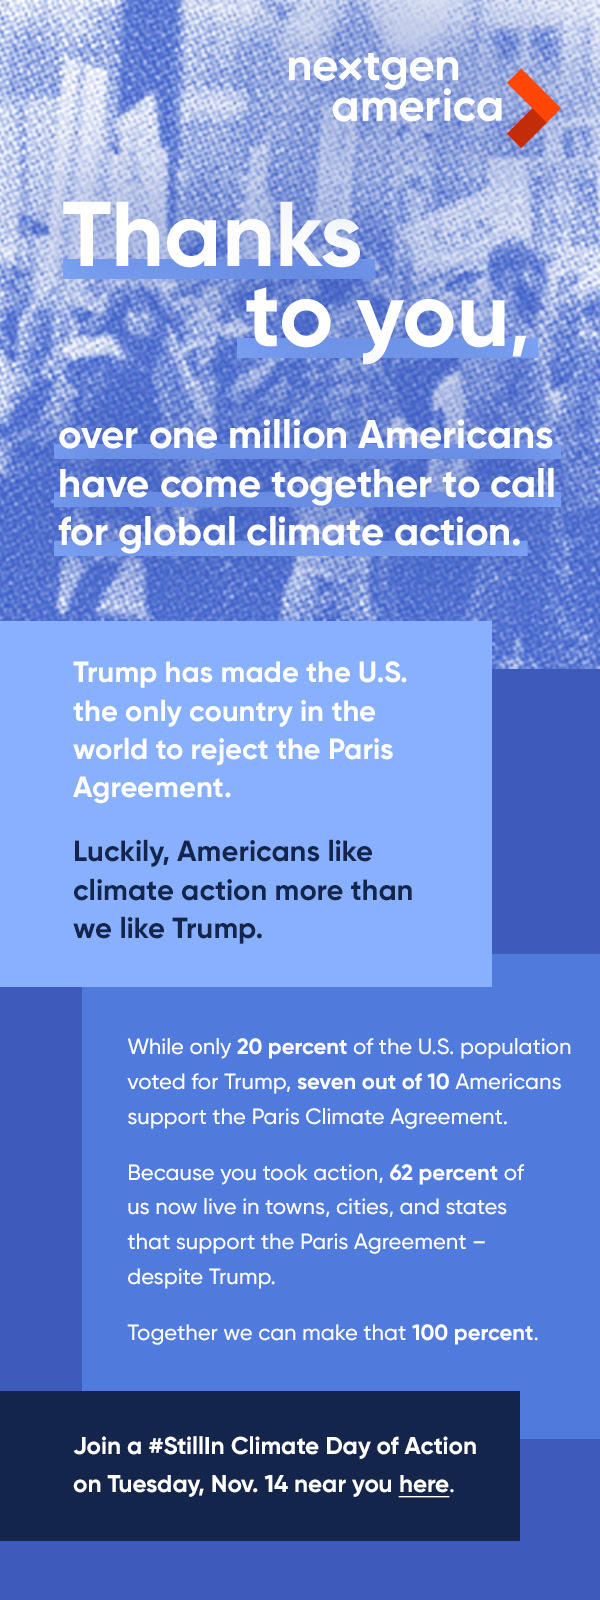 Thanks to you — over one million Americans have come together to call for global climate action. Trump has made the U.S. the only country in the world to reject the Paris agreement. Luckily, Americans like climate action more than we like Trump. While only 20 percent of the U.S. population voted for Trump, seven out of ten Americans support the Paris Climate Agreement. Because you took action, 62 percent of us now live in towns, cities and states support the Paris Agreement — despite Trump. Together we can make that 100% Join a #StillIn Climate Day of Action on Tuesday, November 14 near you: http://nxtgn.us/cqx